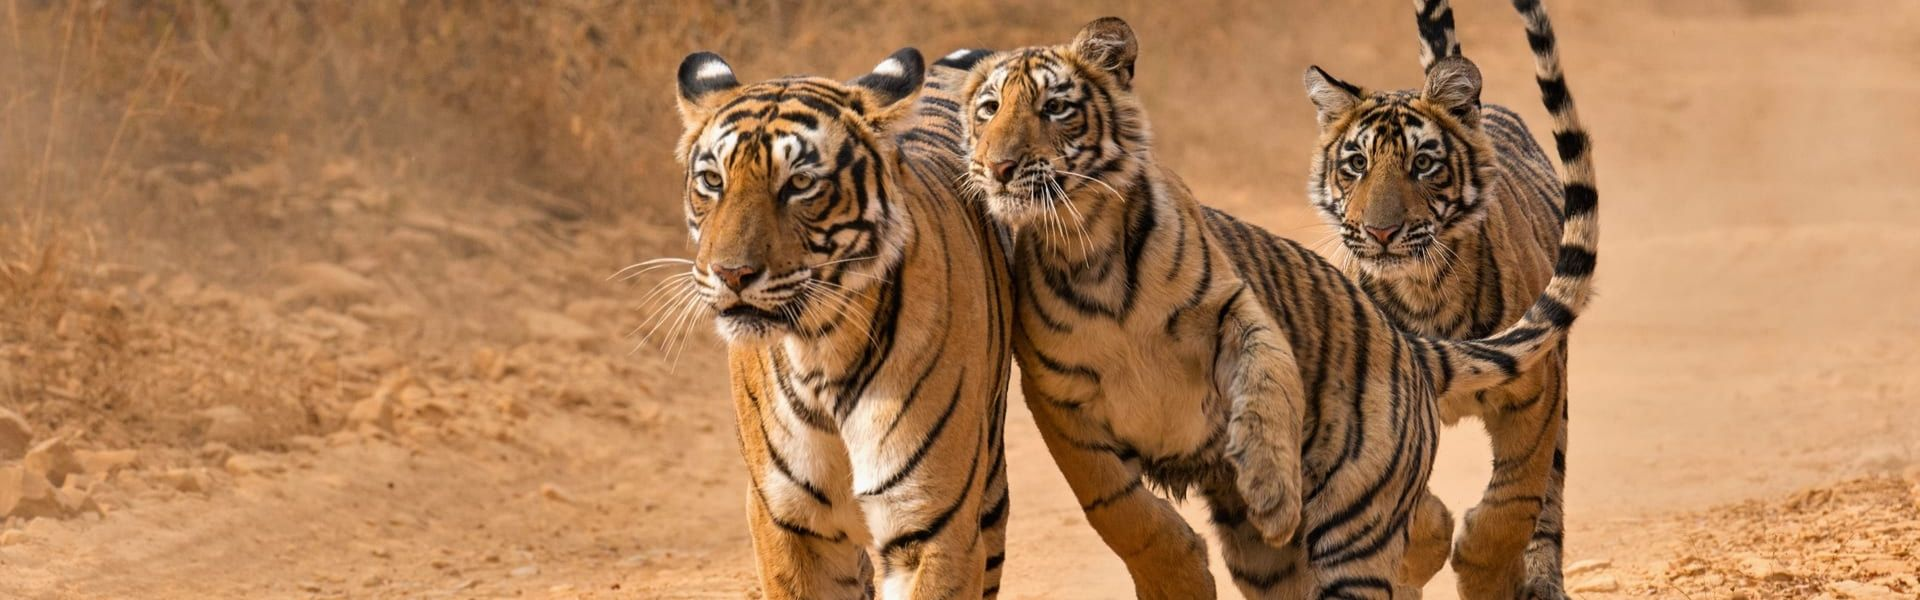 ranthambore tiger reserve,india tour,incredible india,tailor made holidays